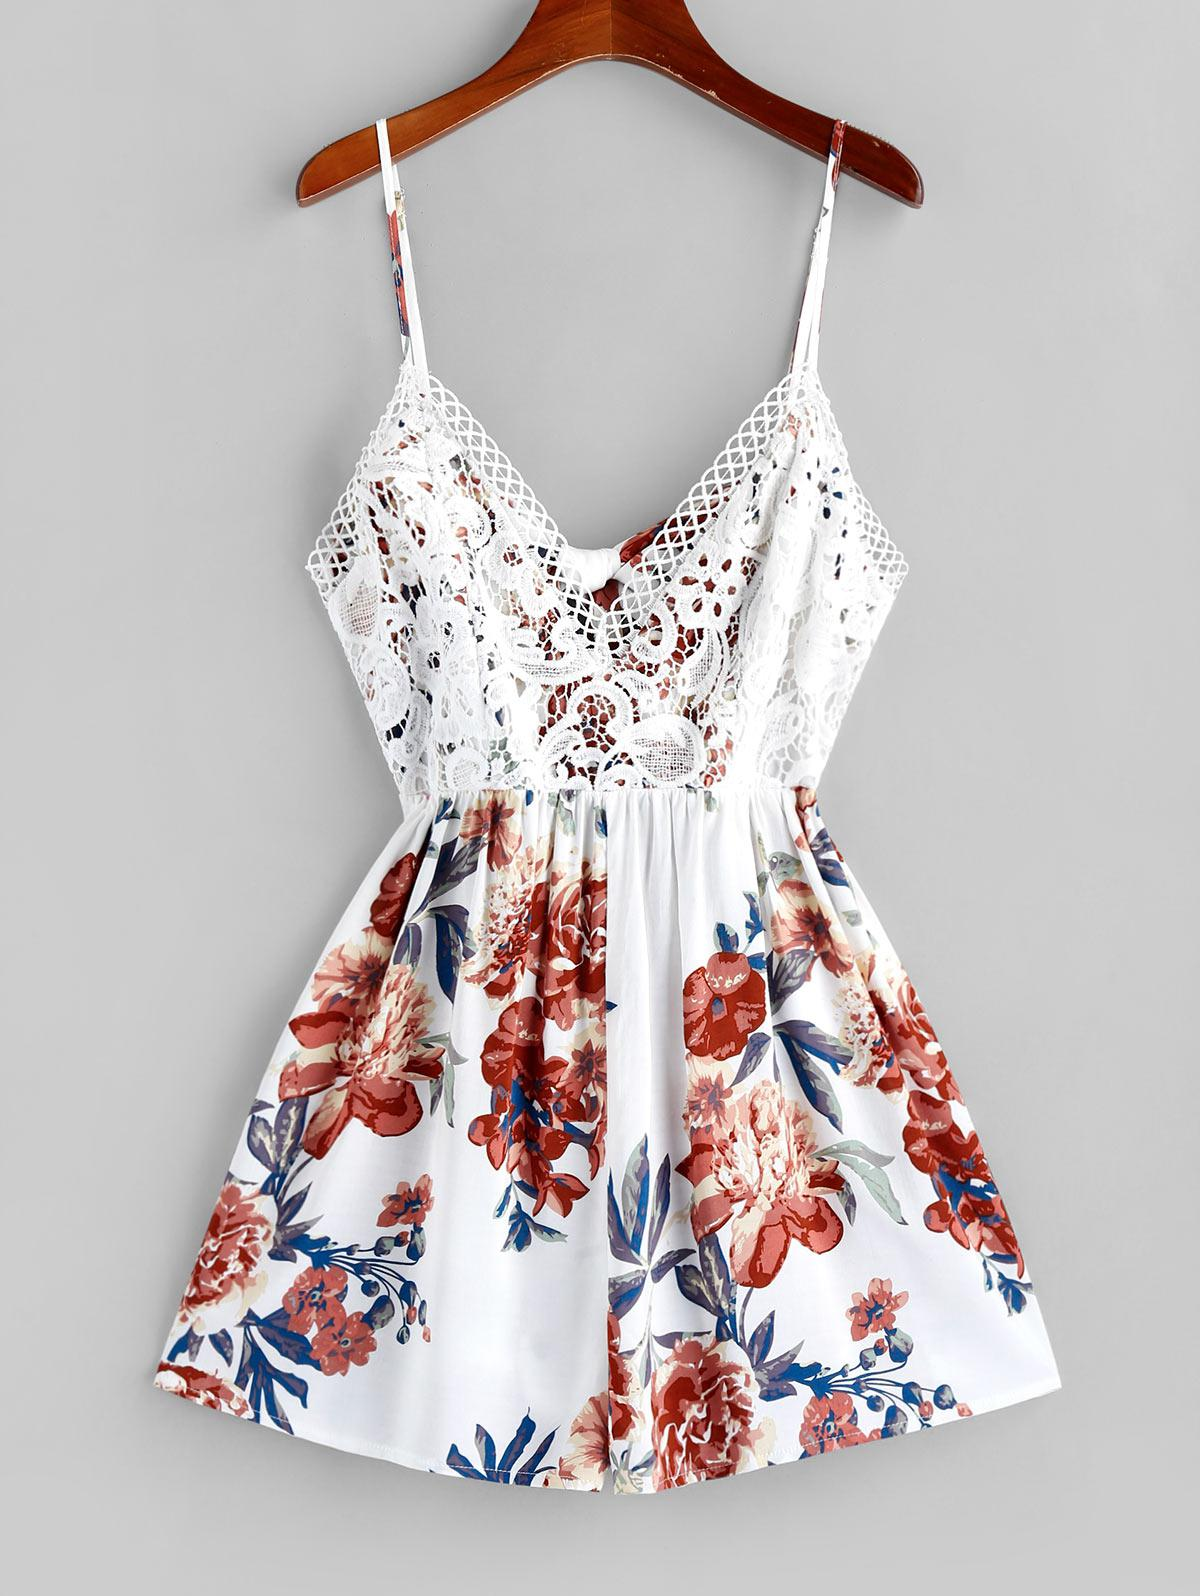 ZAFUL Floral Crochet Lace Overlay Cami Romper